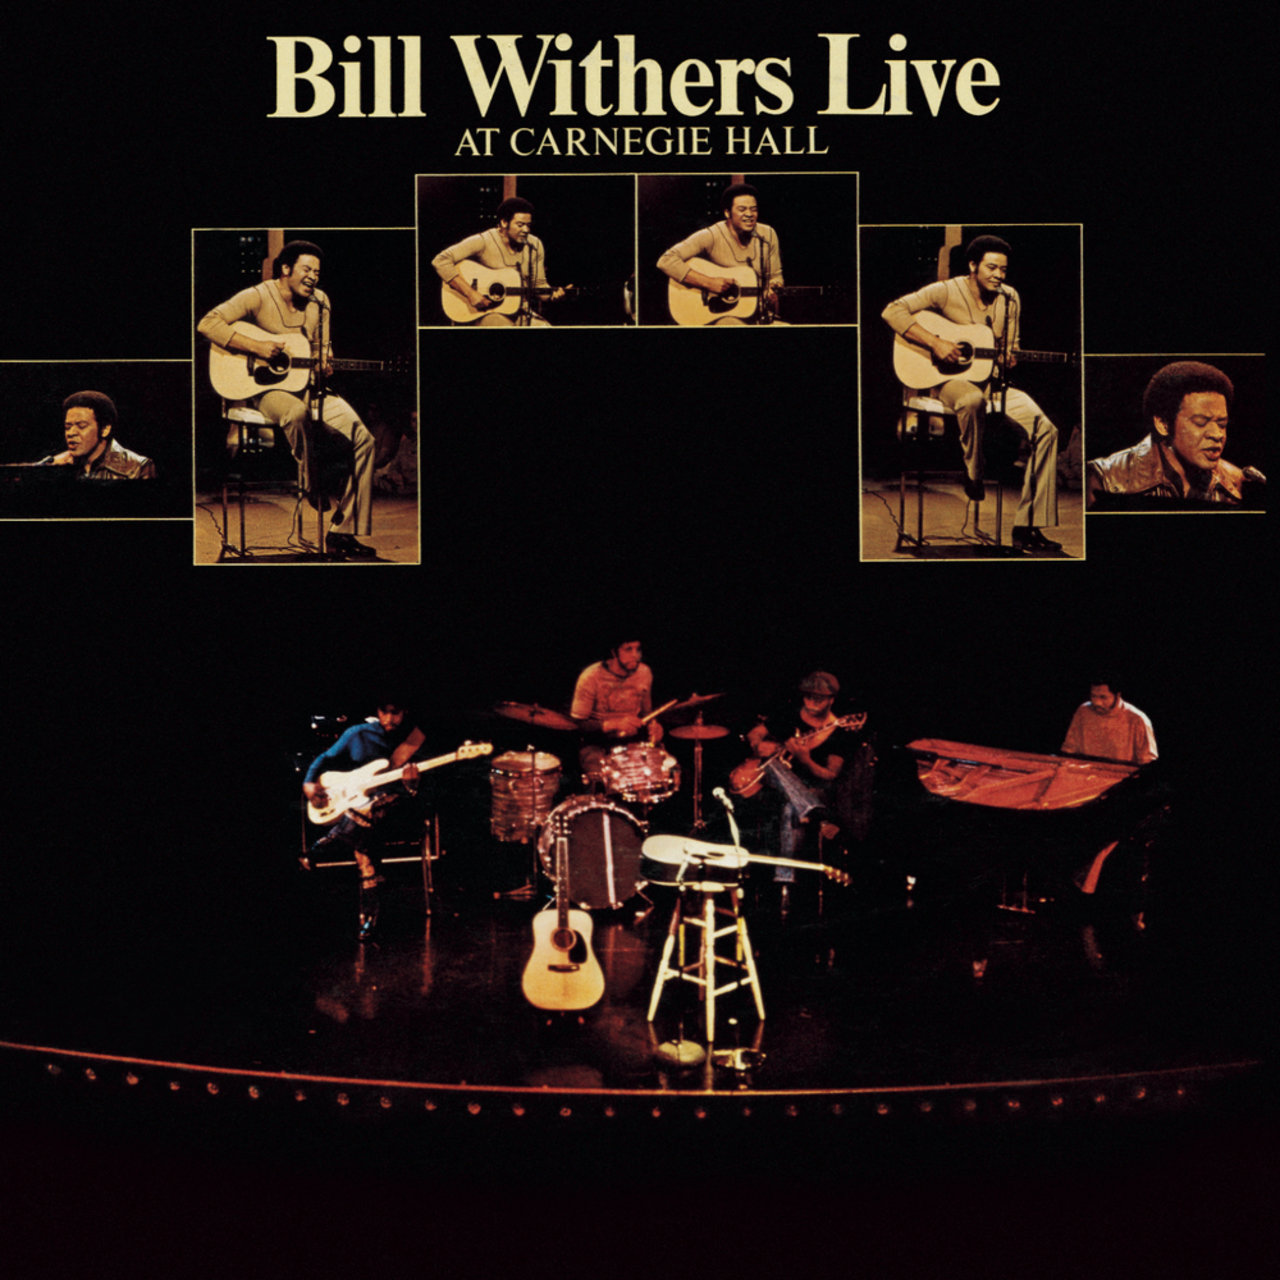 Withers_Bill_Live_At_Carnegie_Hall.jpg